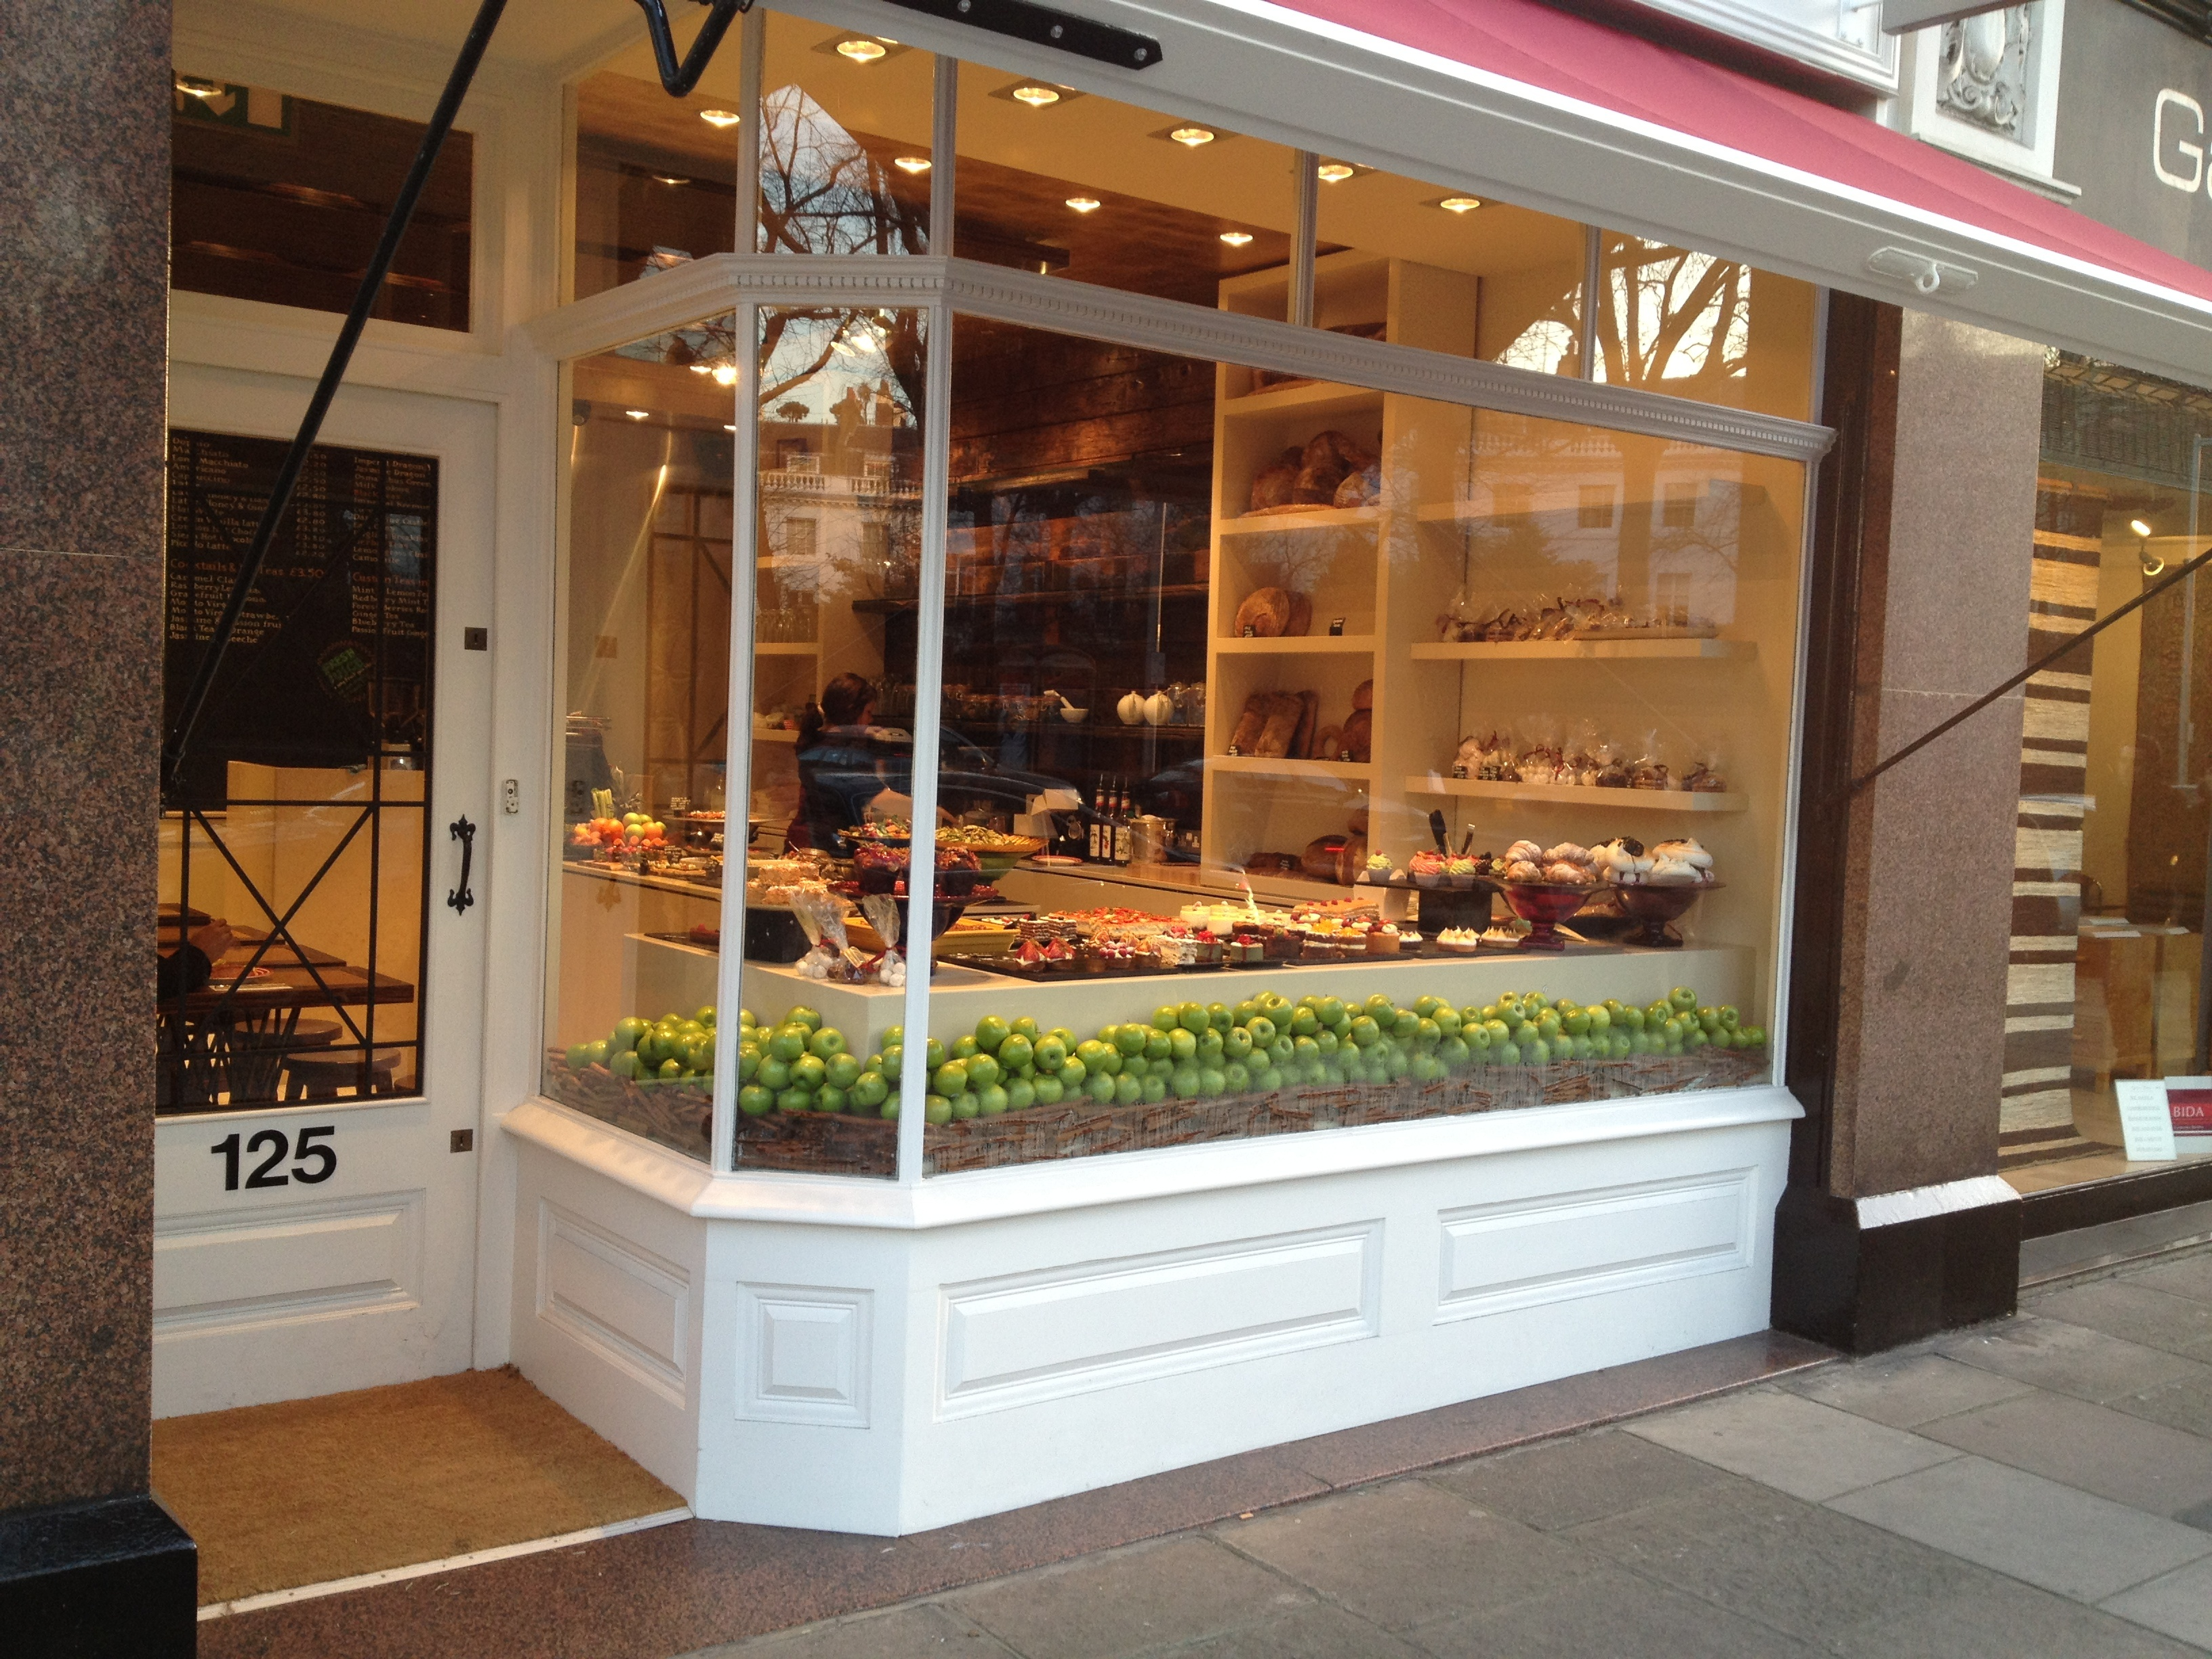 leto-caffe_125-fulham-road_eatreview-blog